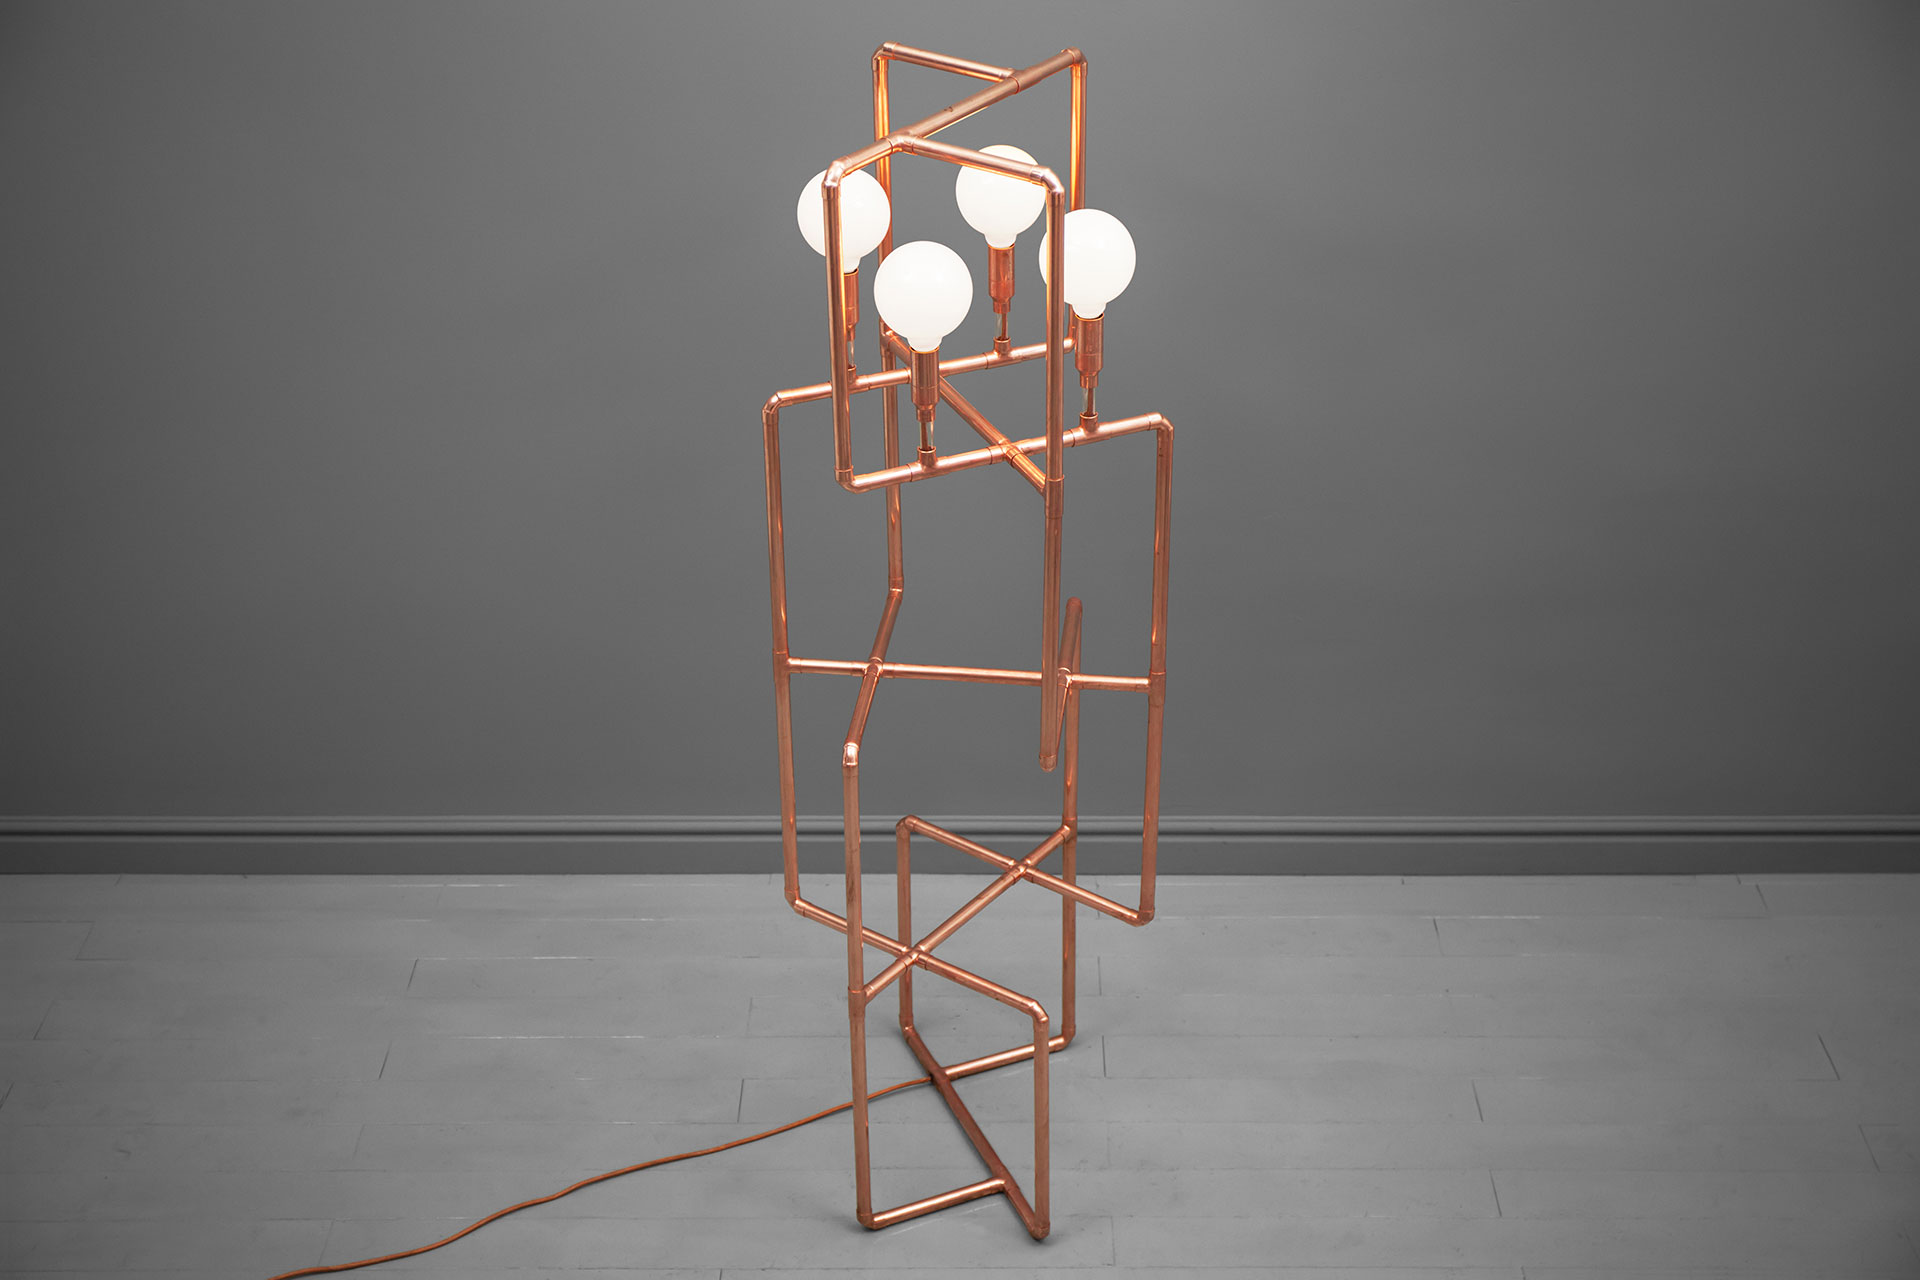 Custom floor lamp made of copper pipes inspired by industrial design